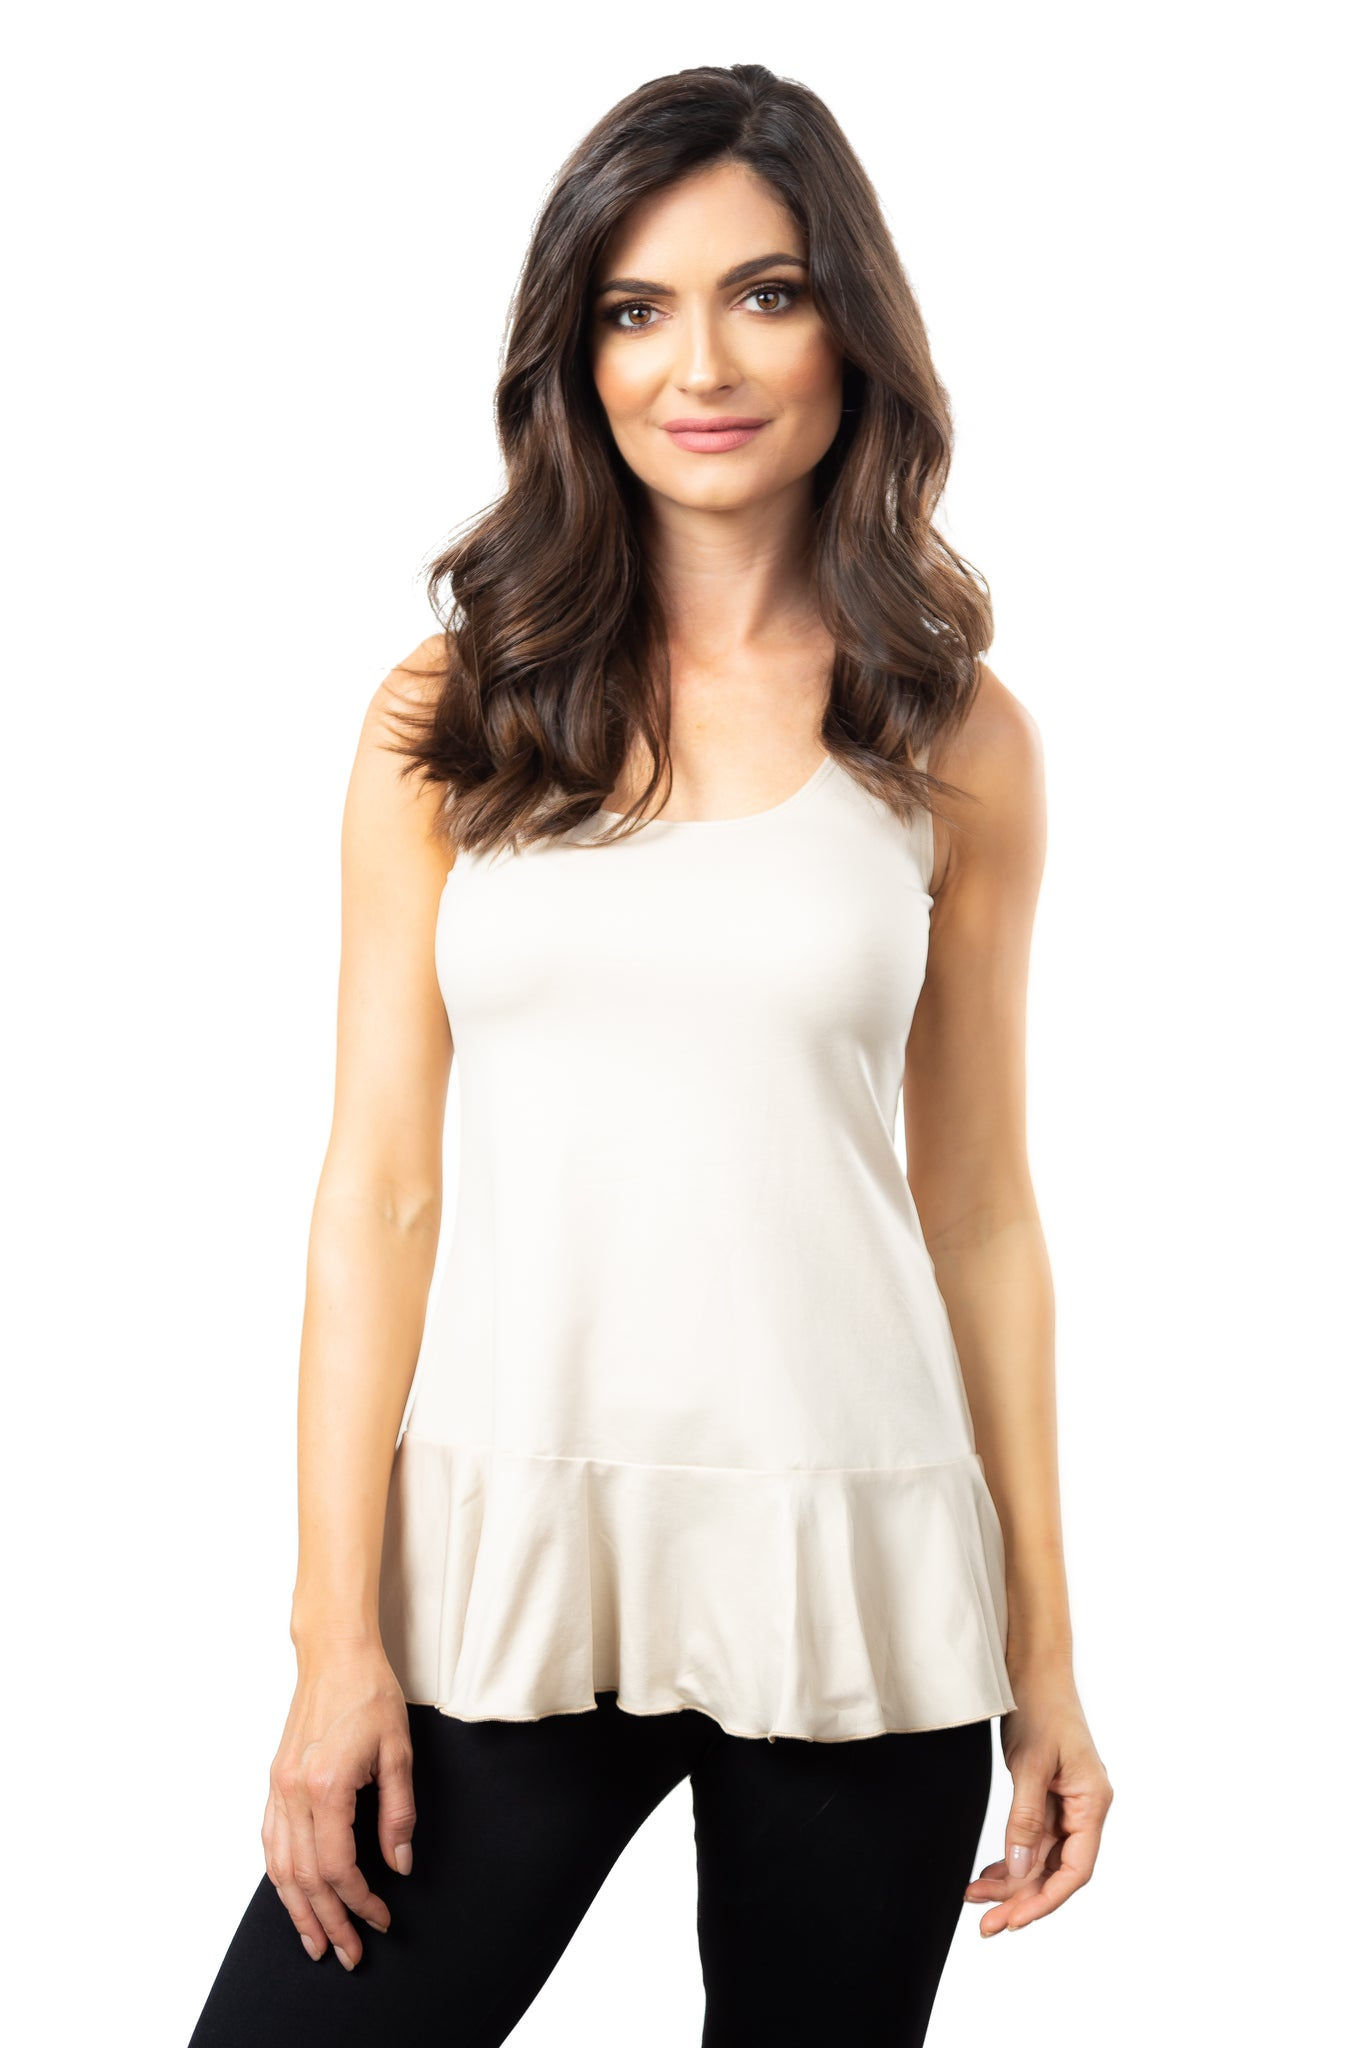 The Ruffle Tank